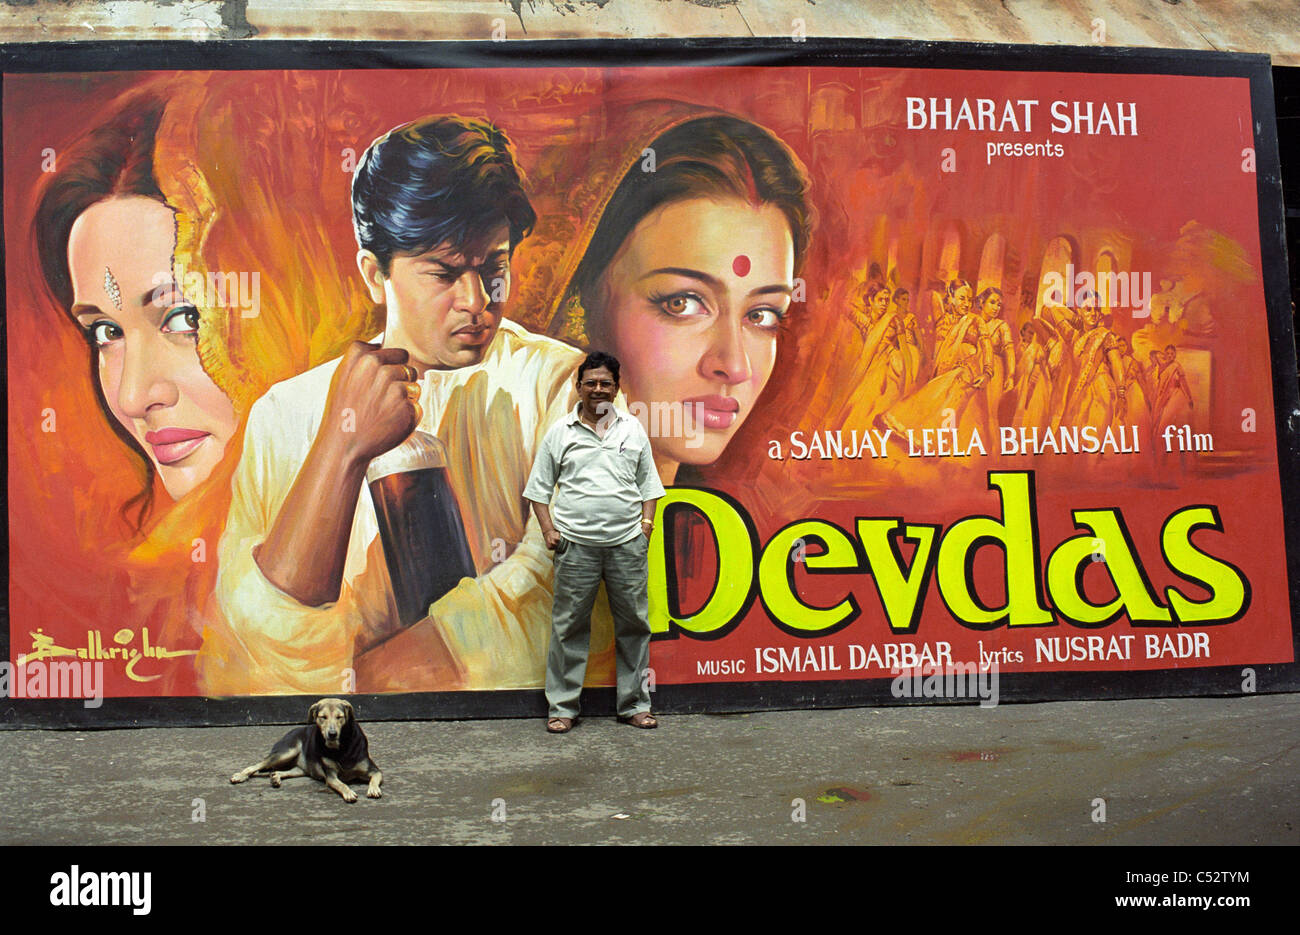 india mumbai painting of bollywood movie posters for